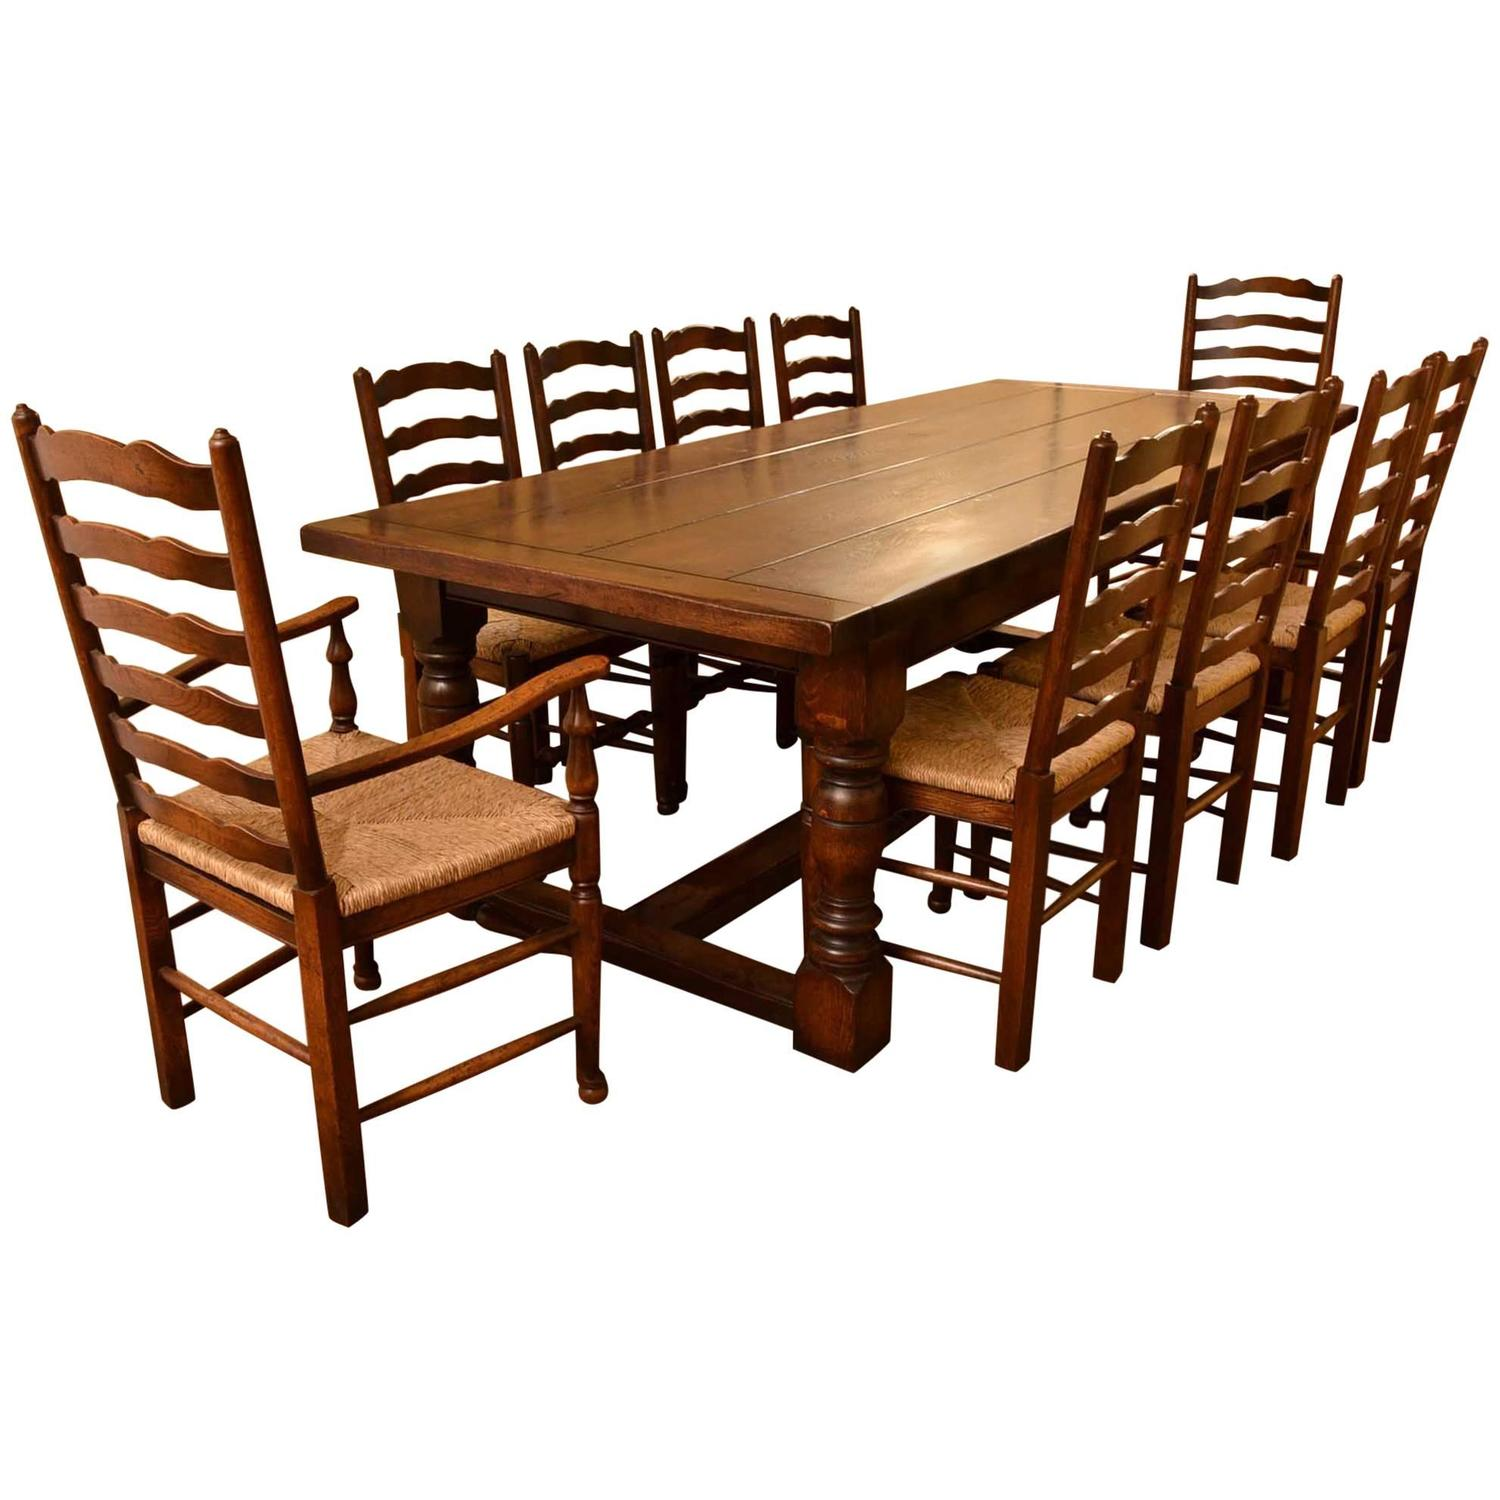 bespoke solid oak refectory dining table and ten chairs